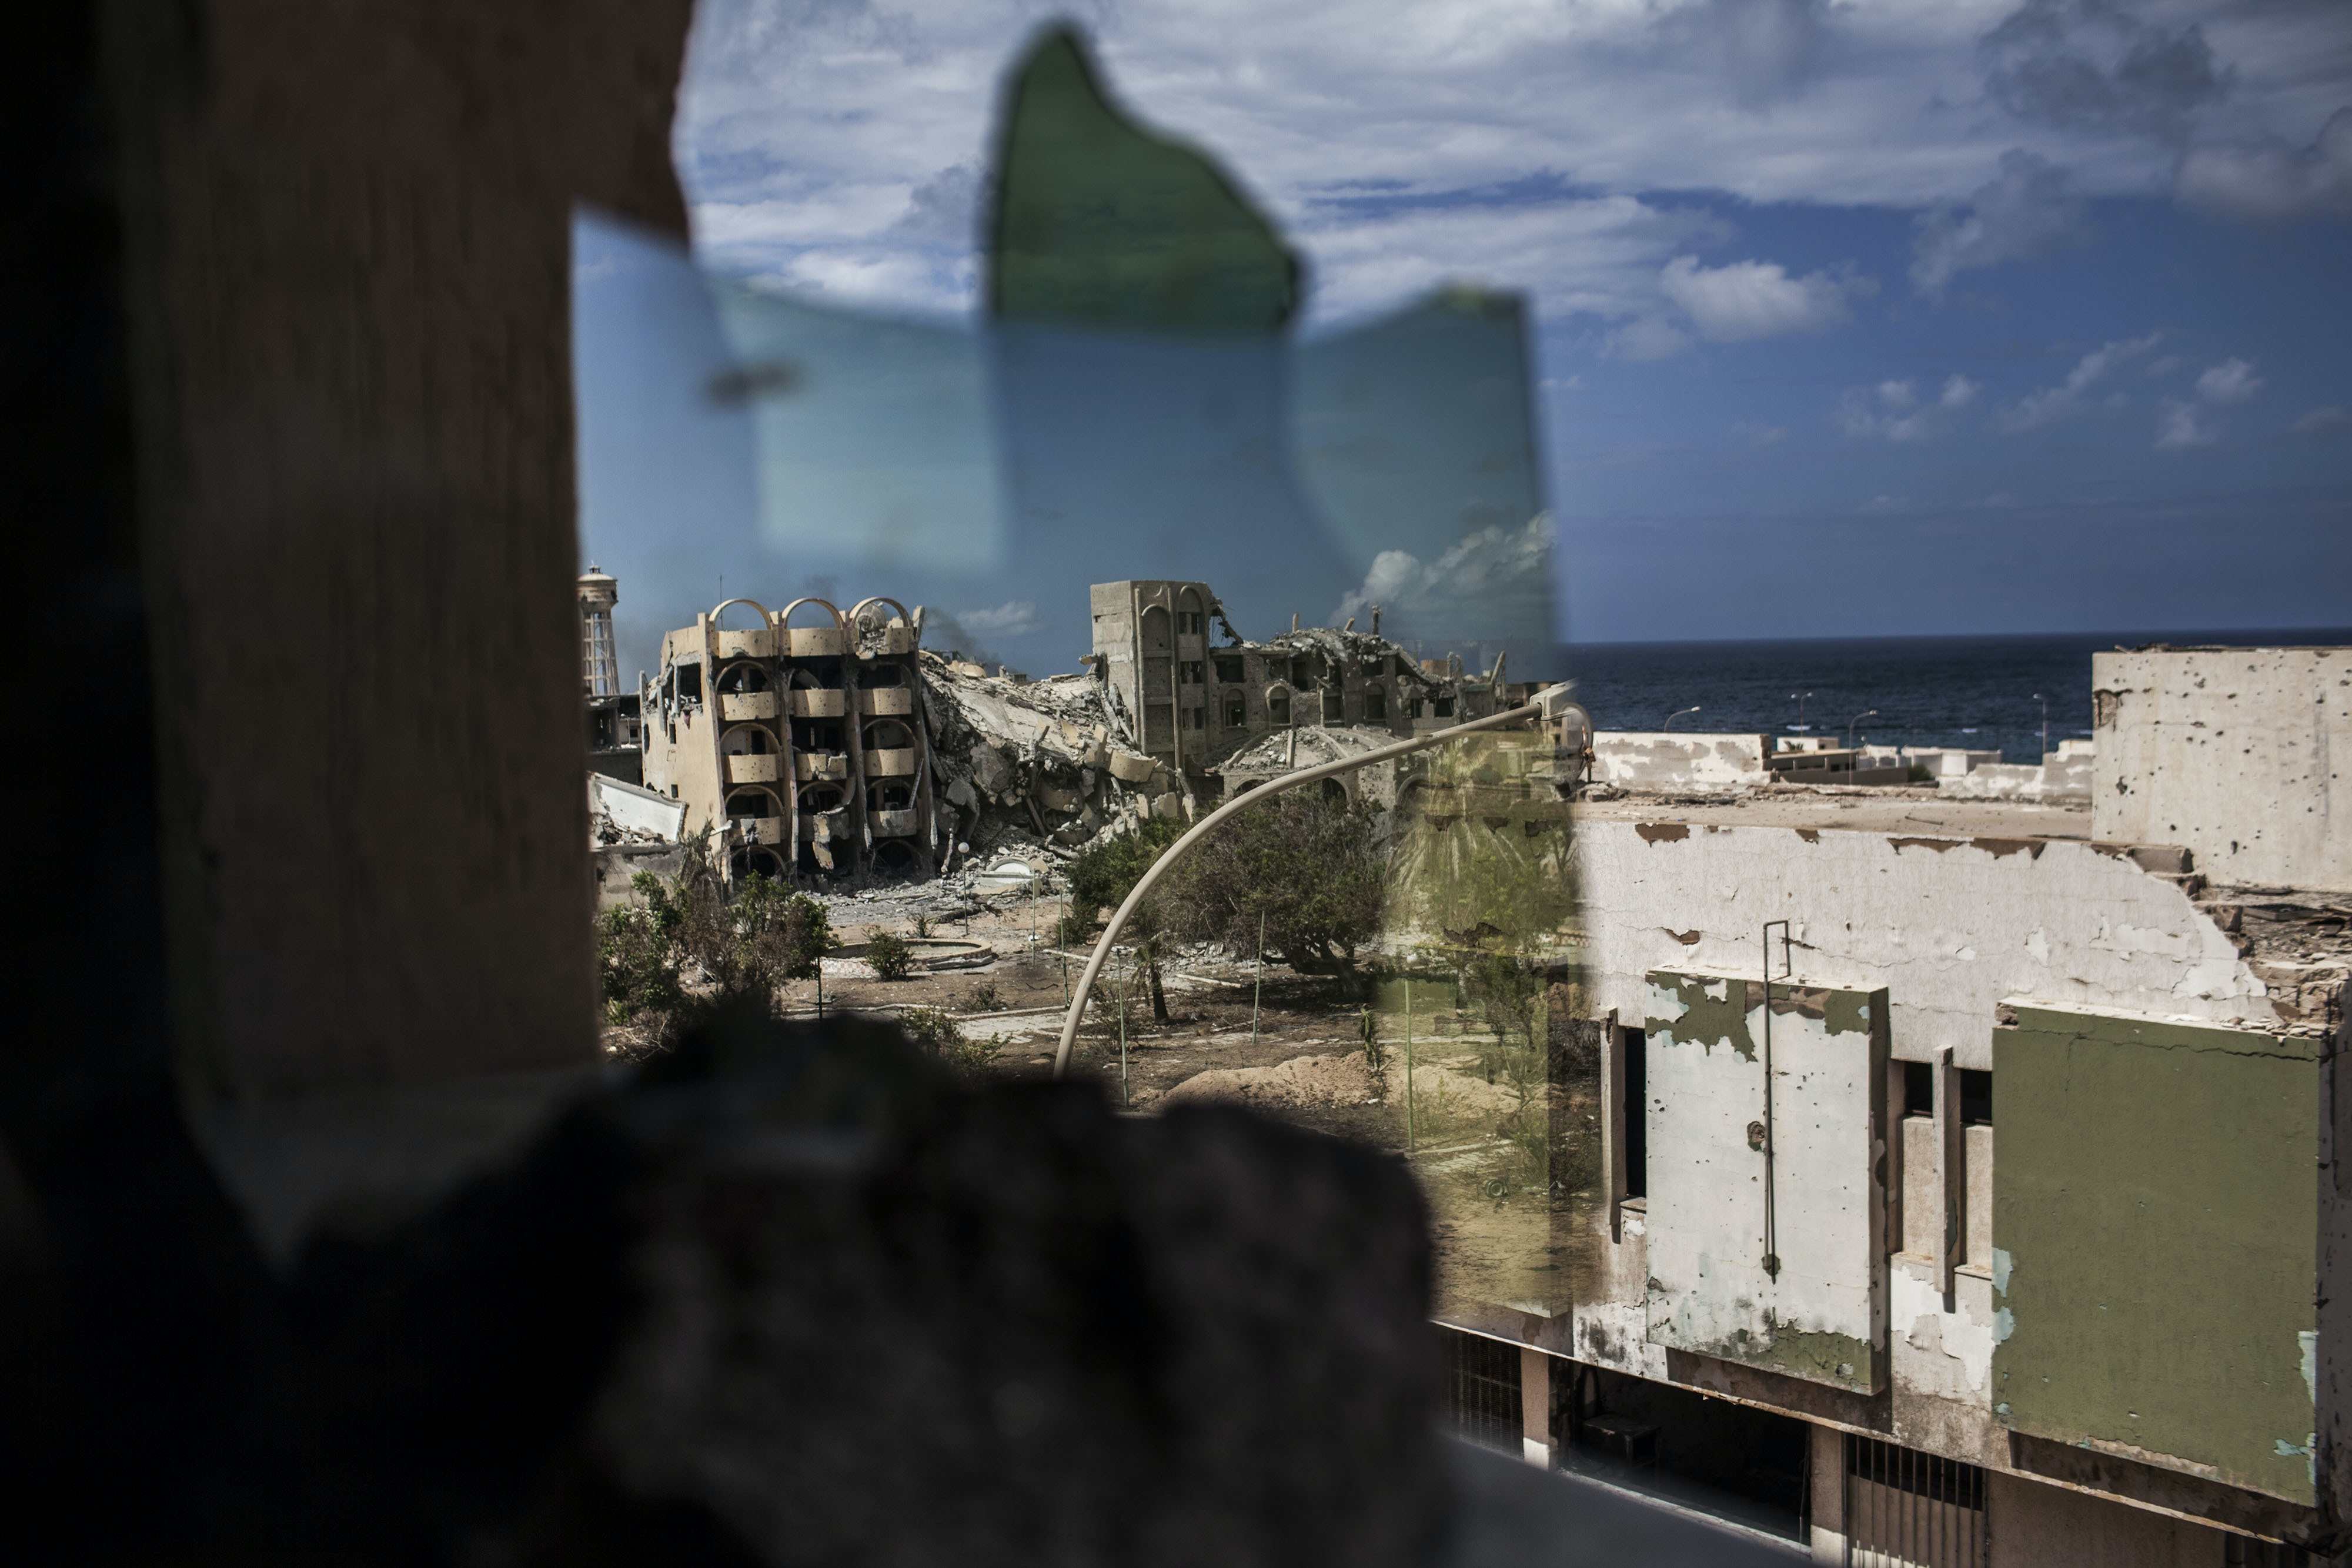 The view from a hidden position looking into a mirror, where fighters of the Libyan forces affiliated to the Tripoli government remain out of sight from snipers and scan for possible targets in the street outside, from their vantage point inside a building at the western front line in Sirte, Libya, Tuesday, Sept. 27, 2016. (AP Photo/Manu Brabo)